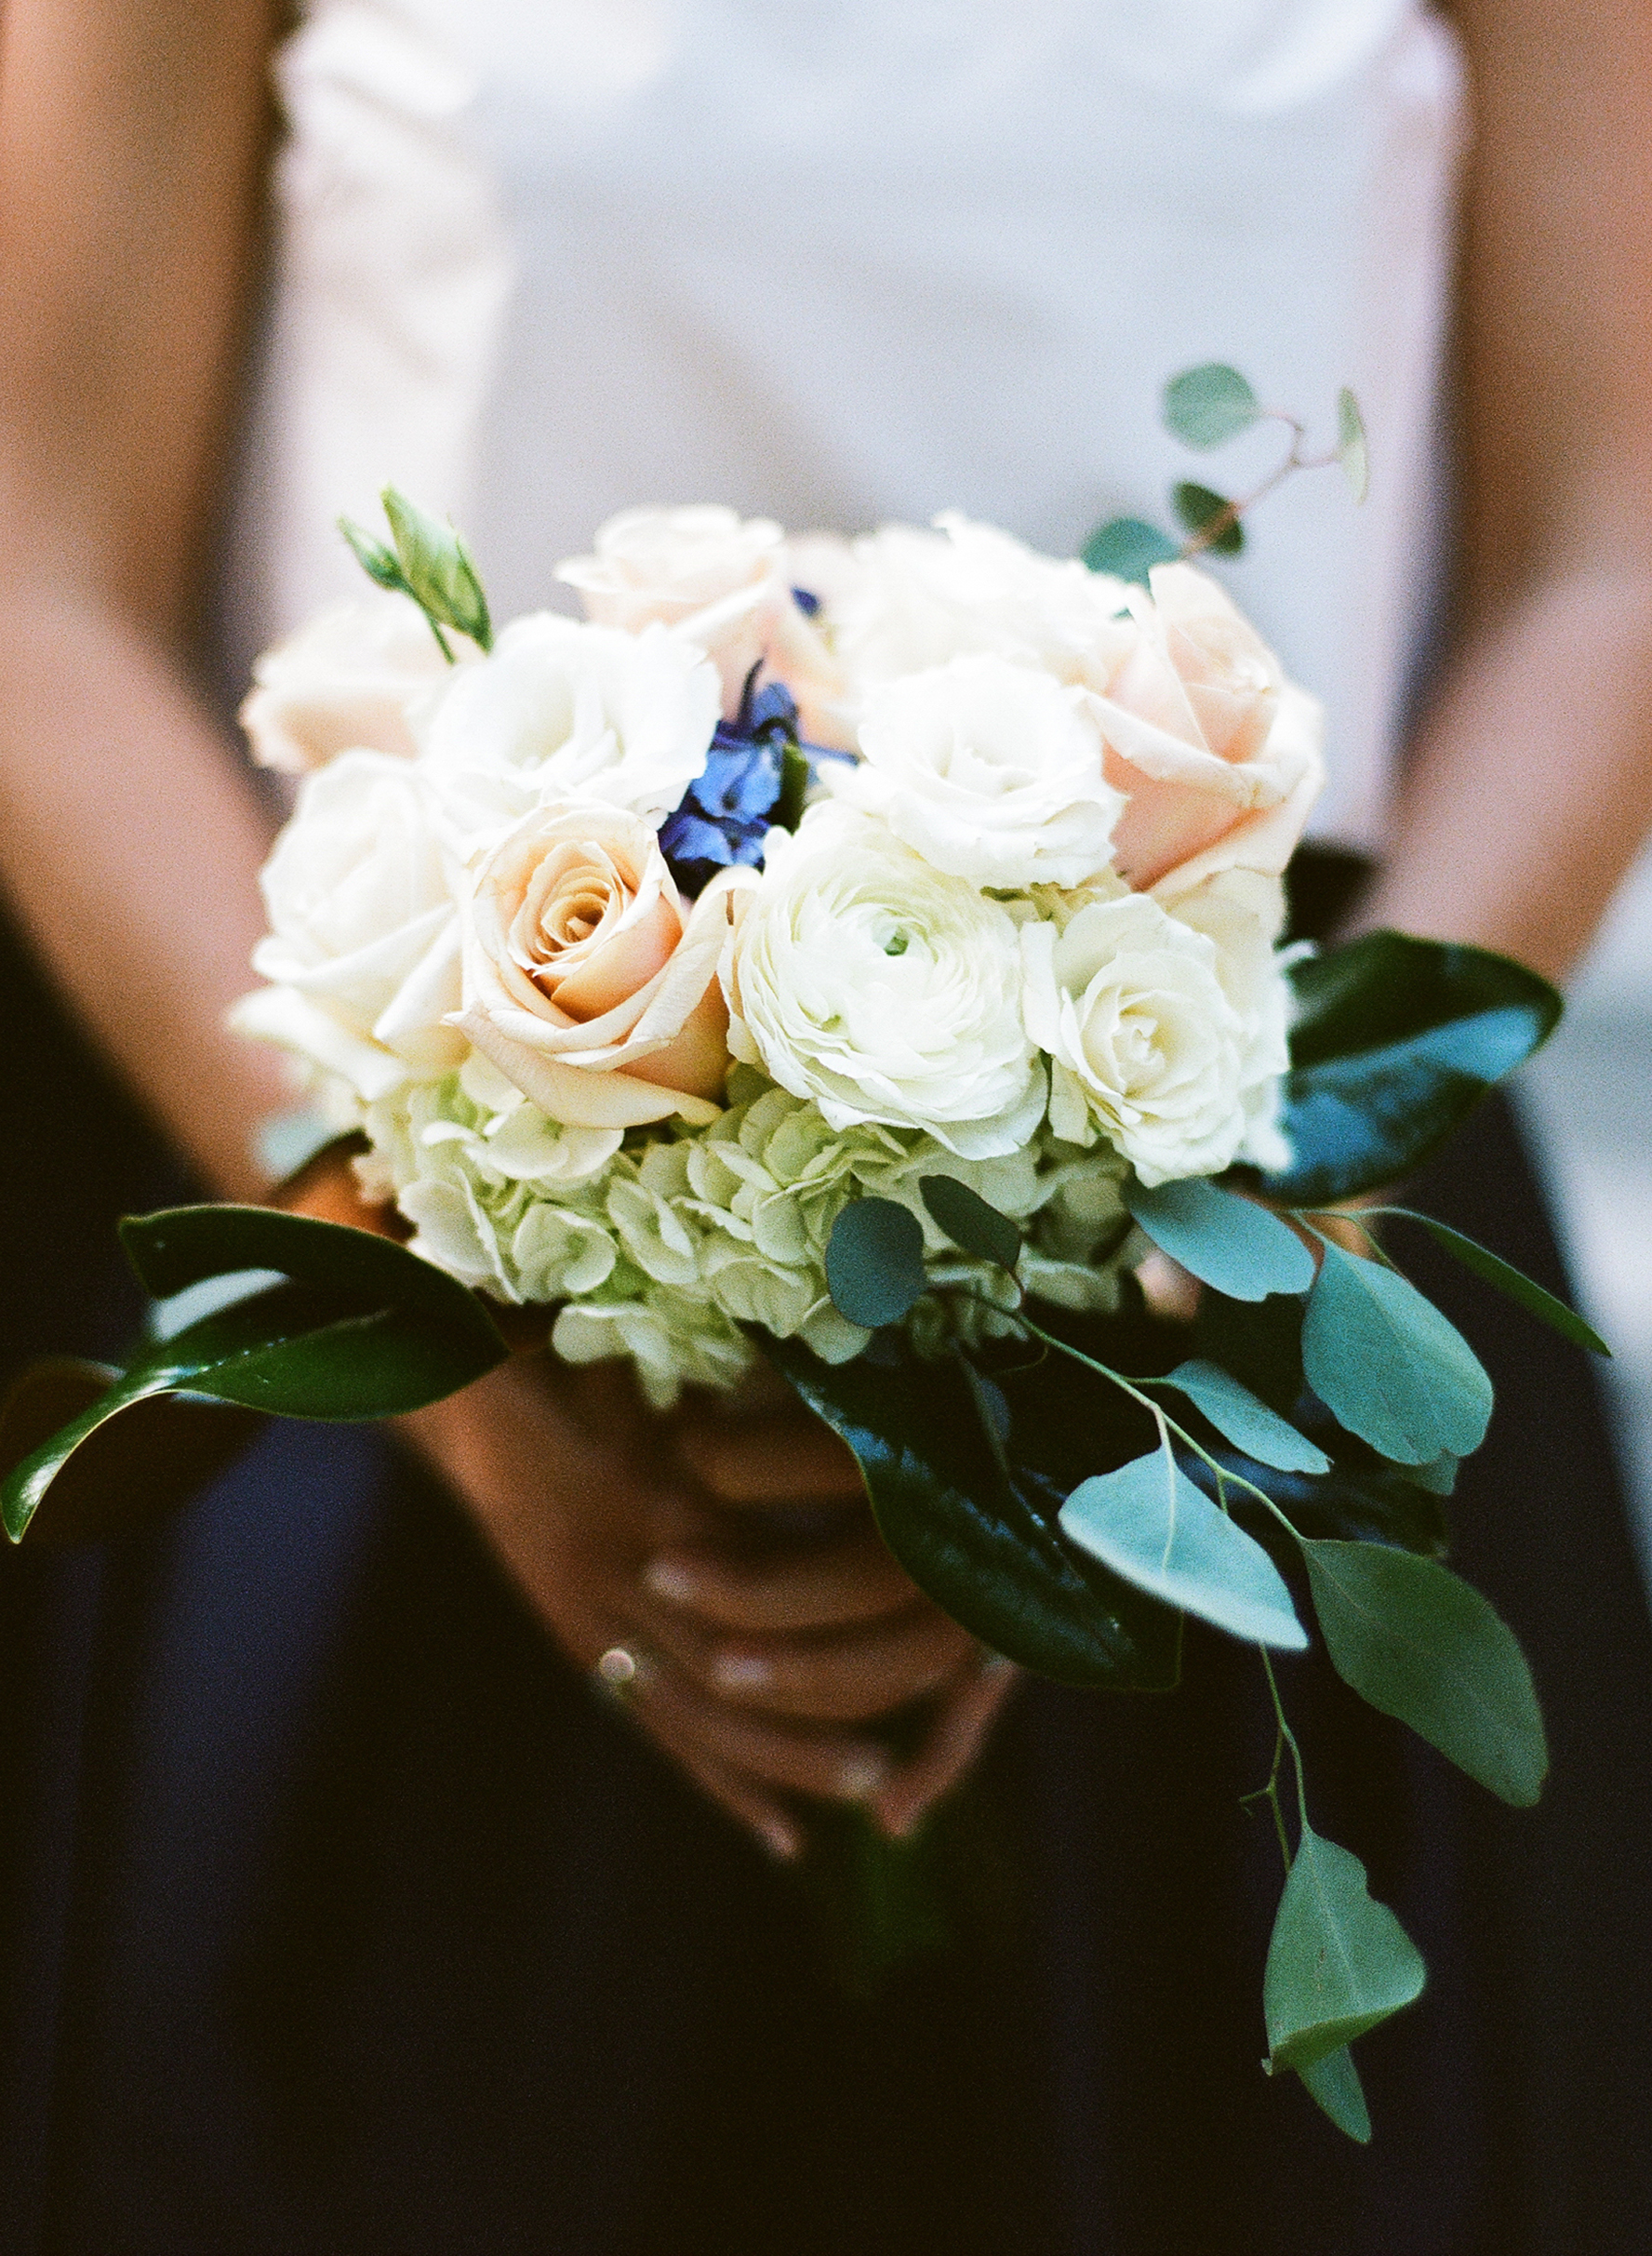 Southern Fete, Southern Wedding, Flowers by Rodney, White, Blush and Green Floral Bouquet